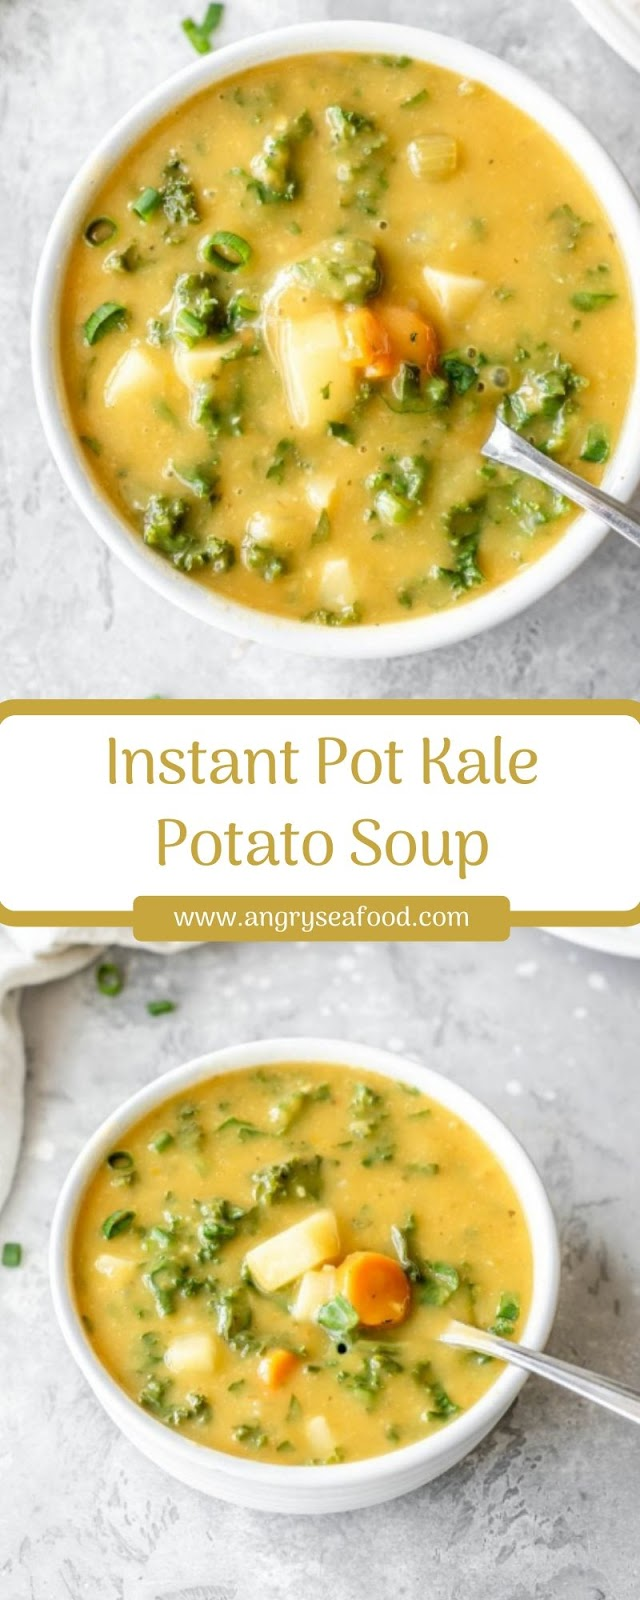 Instant Pot Kale Potato Soup